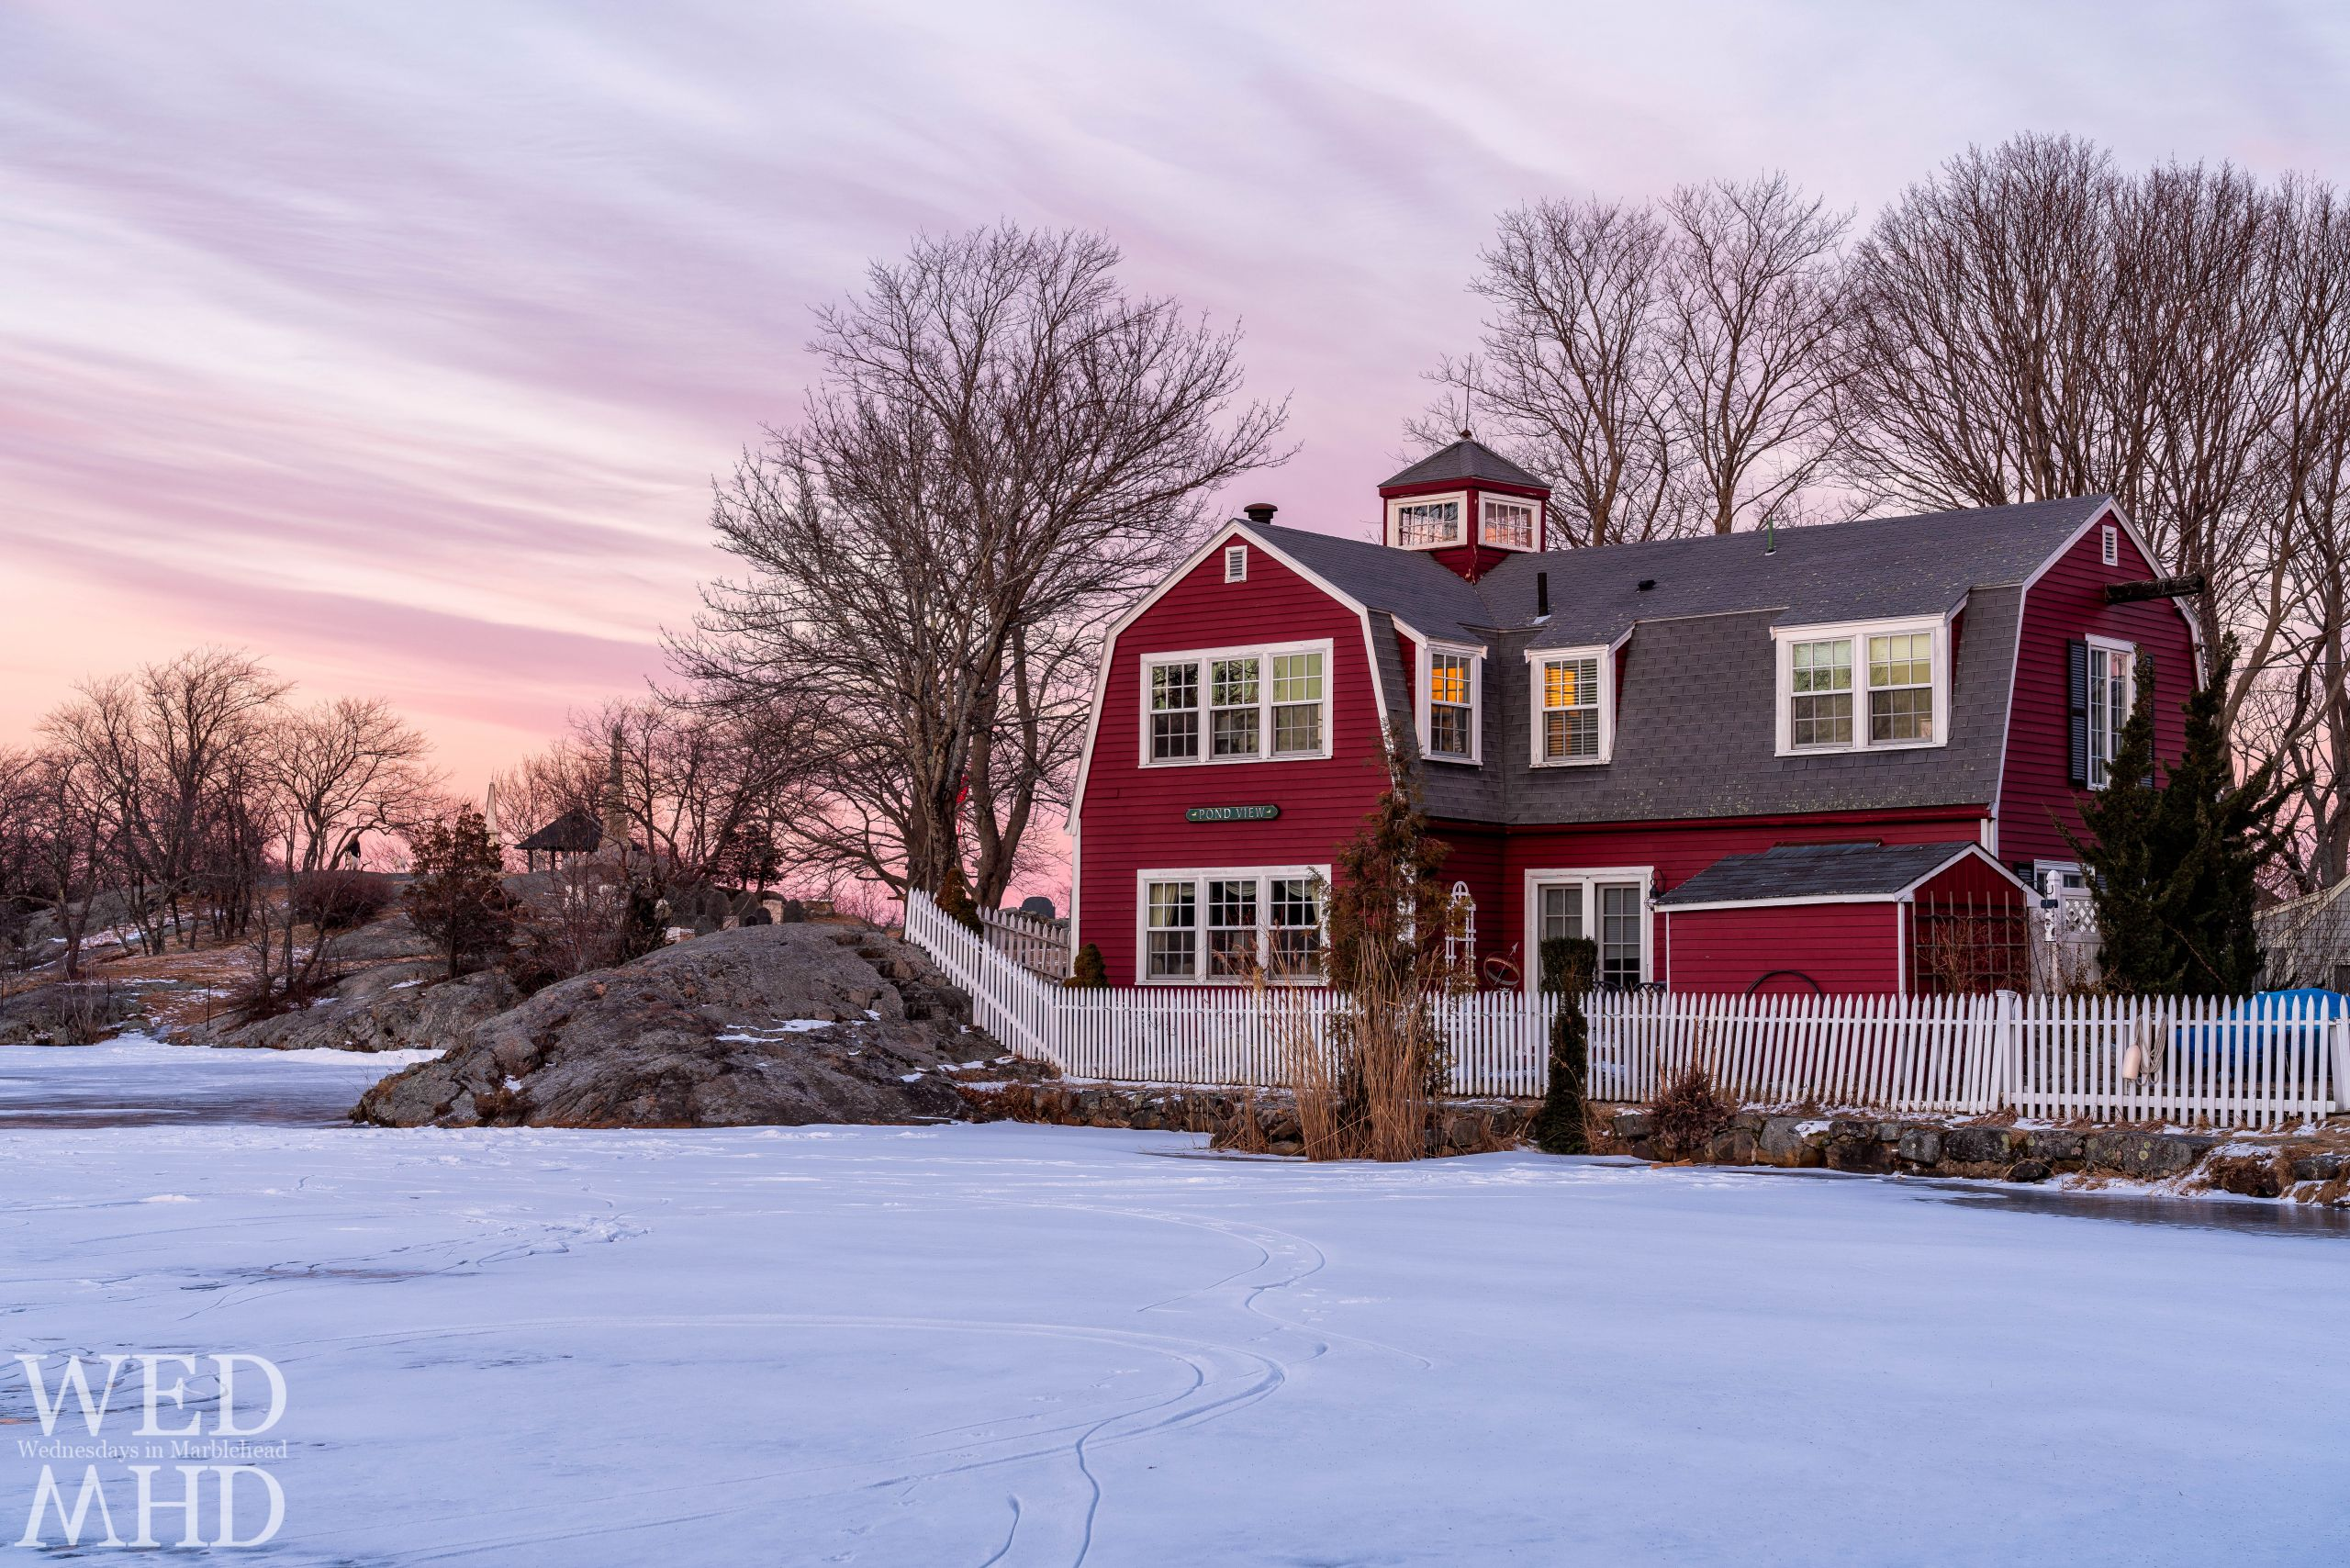 The red house named Pond View is captured at sunset with a light dusting of snow atop the frozen Redd's Pond